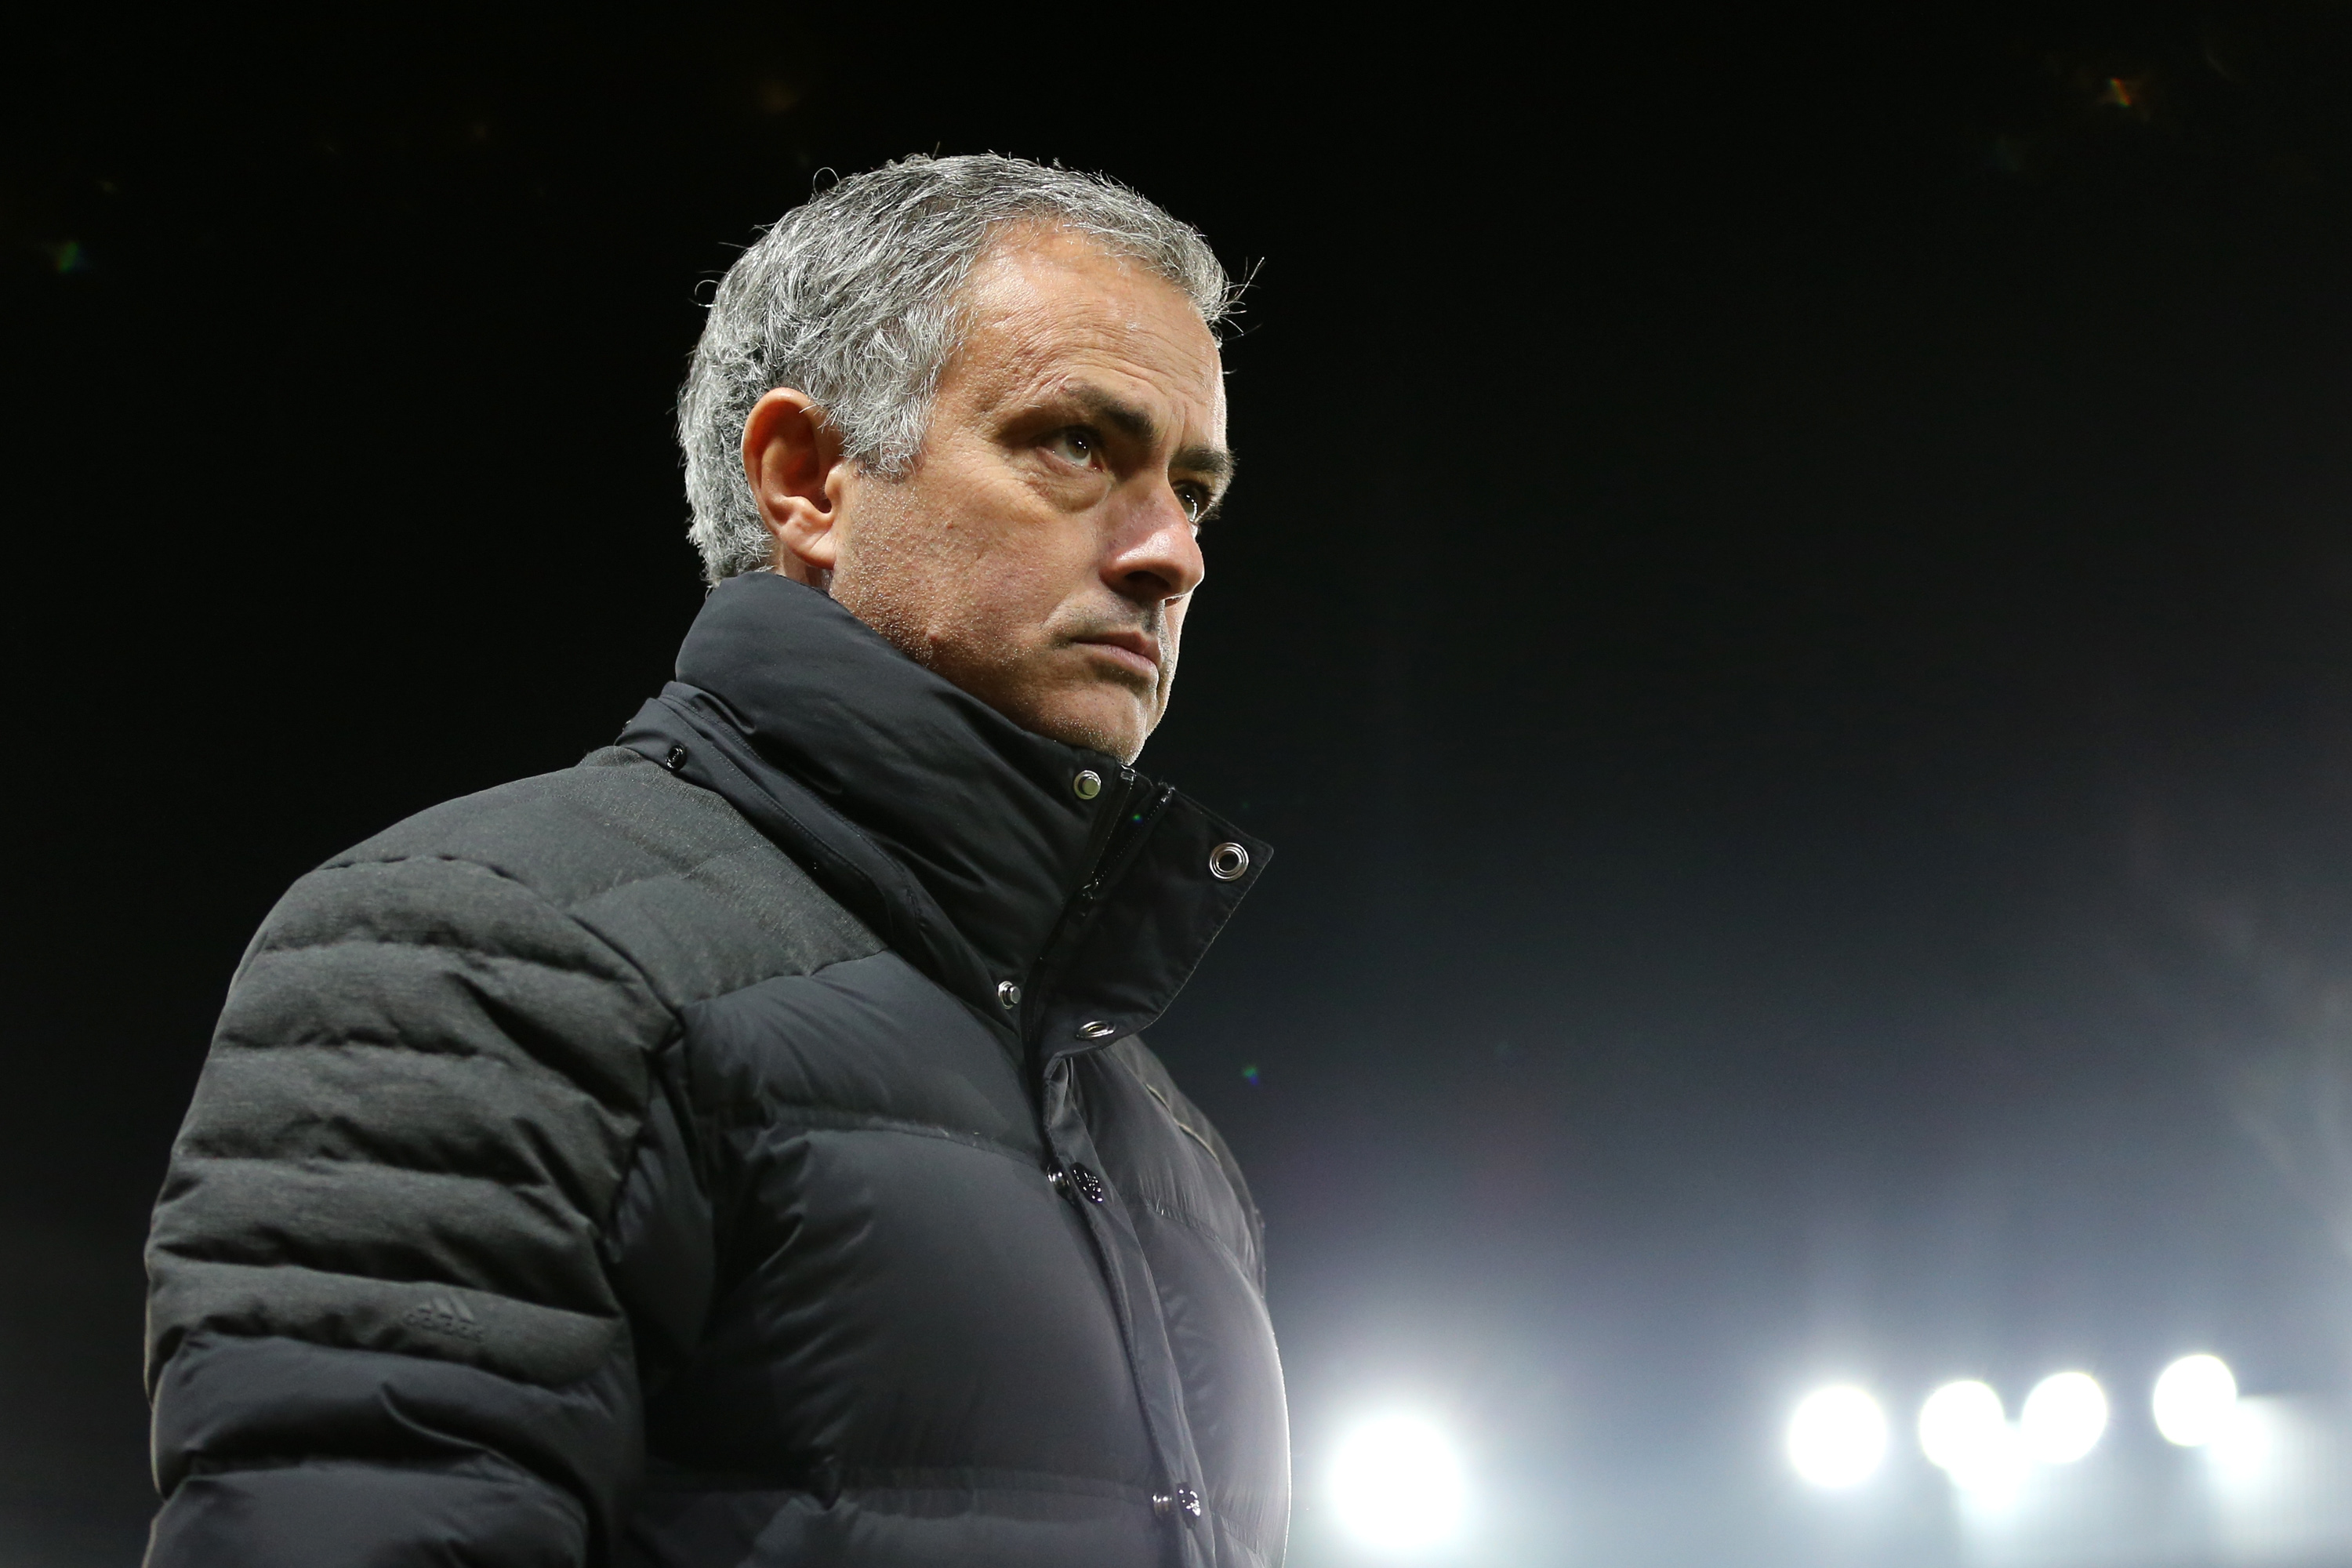 Jose Mourinho will damage Manchester United like he did Chelsea, says Dietmar Hamann